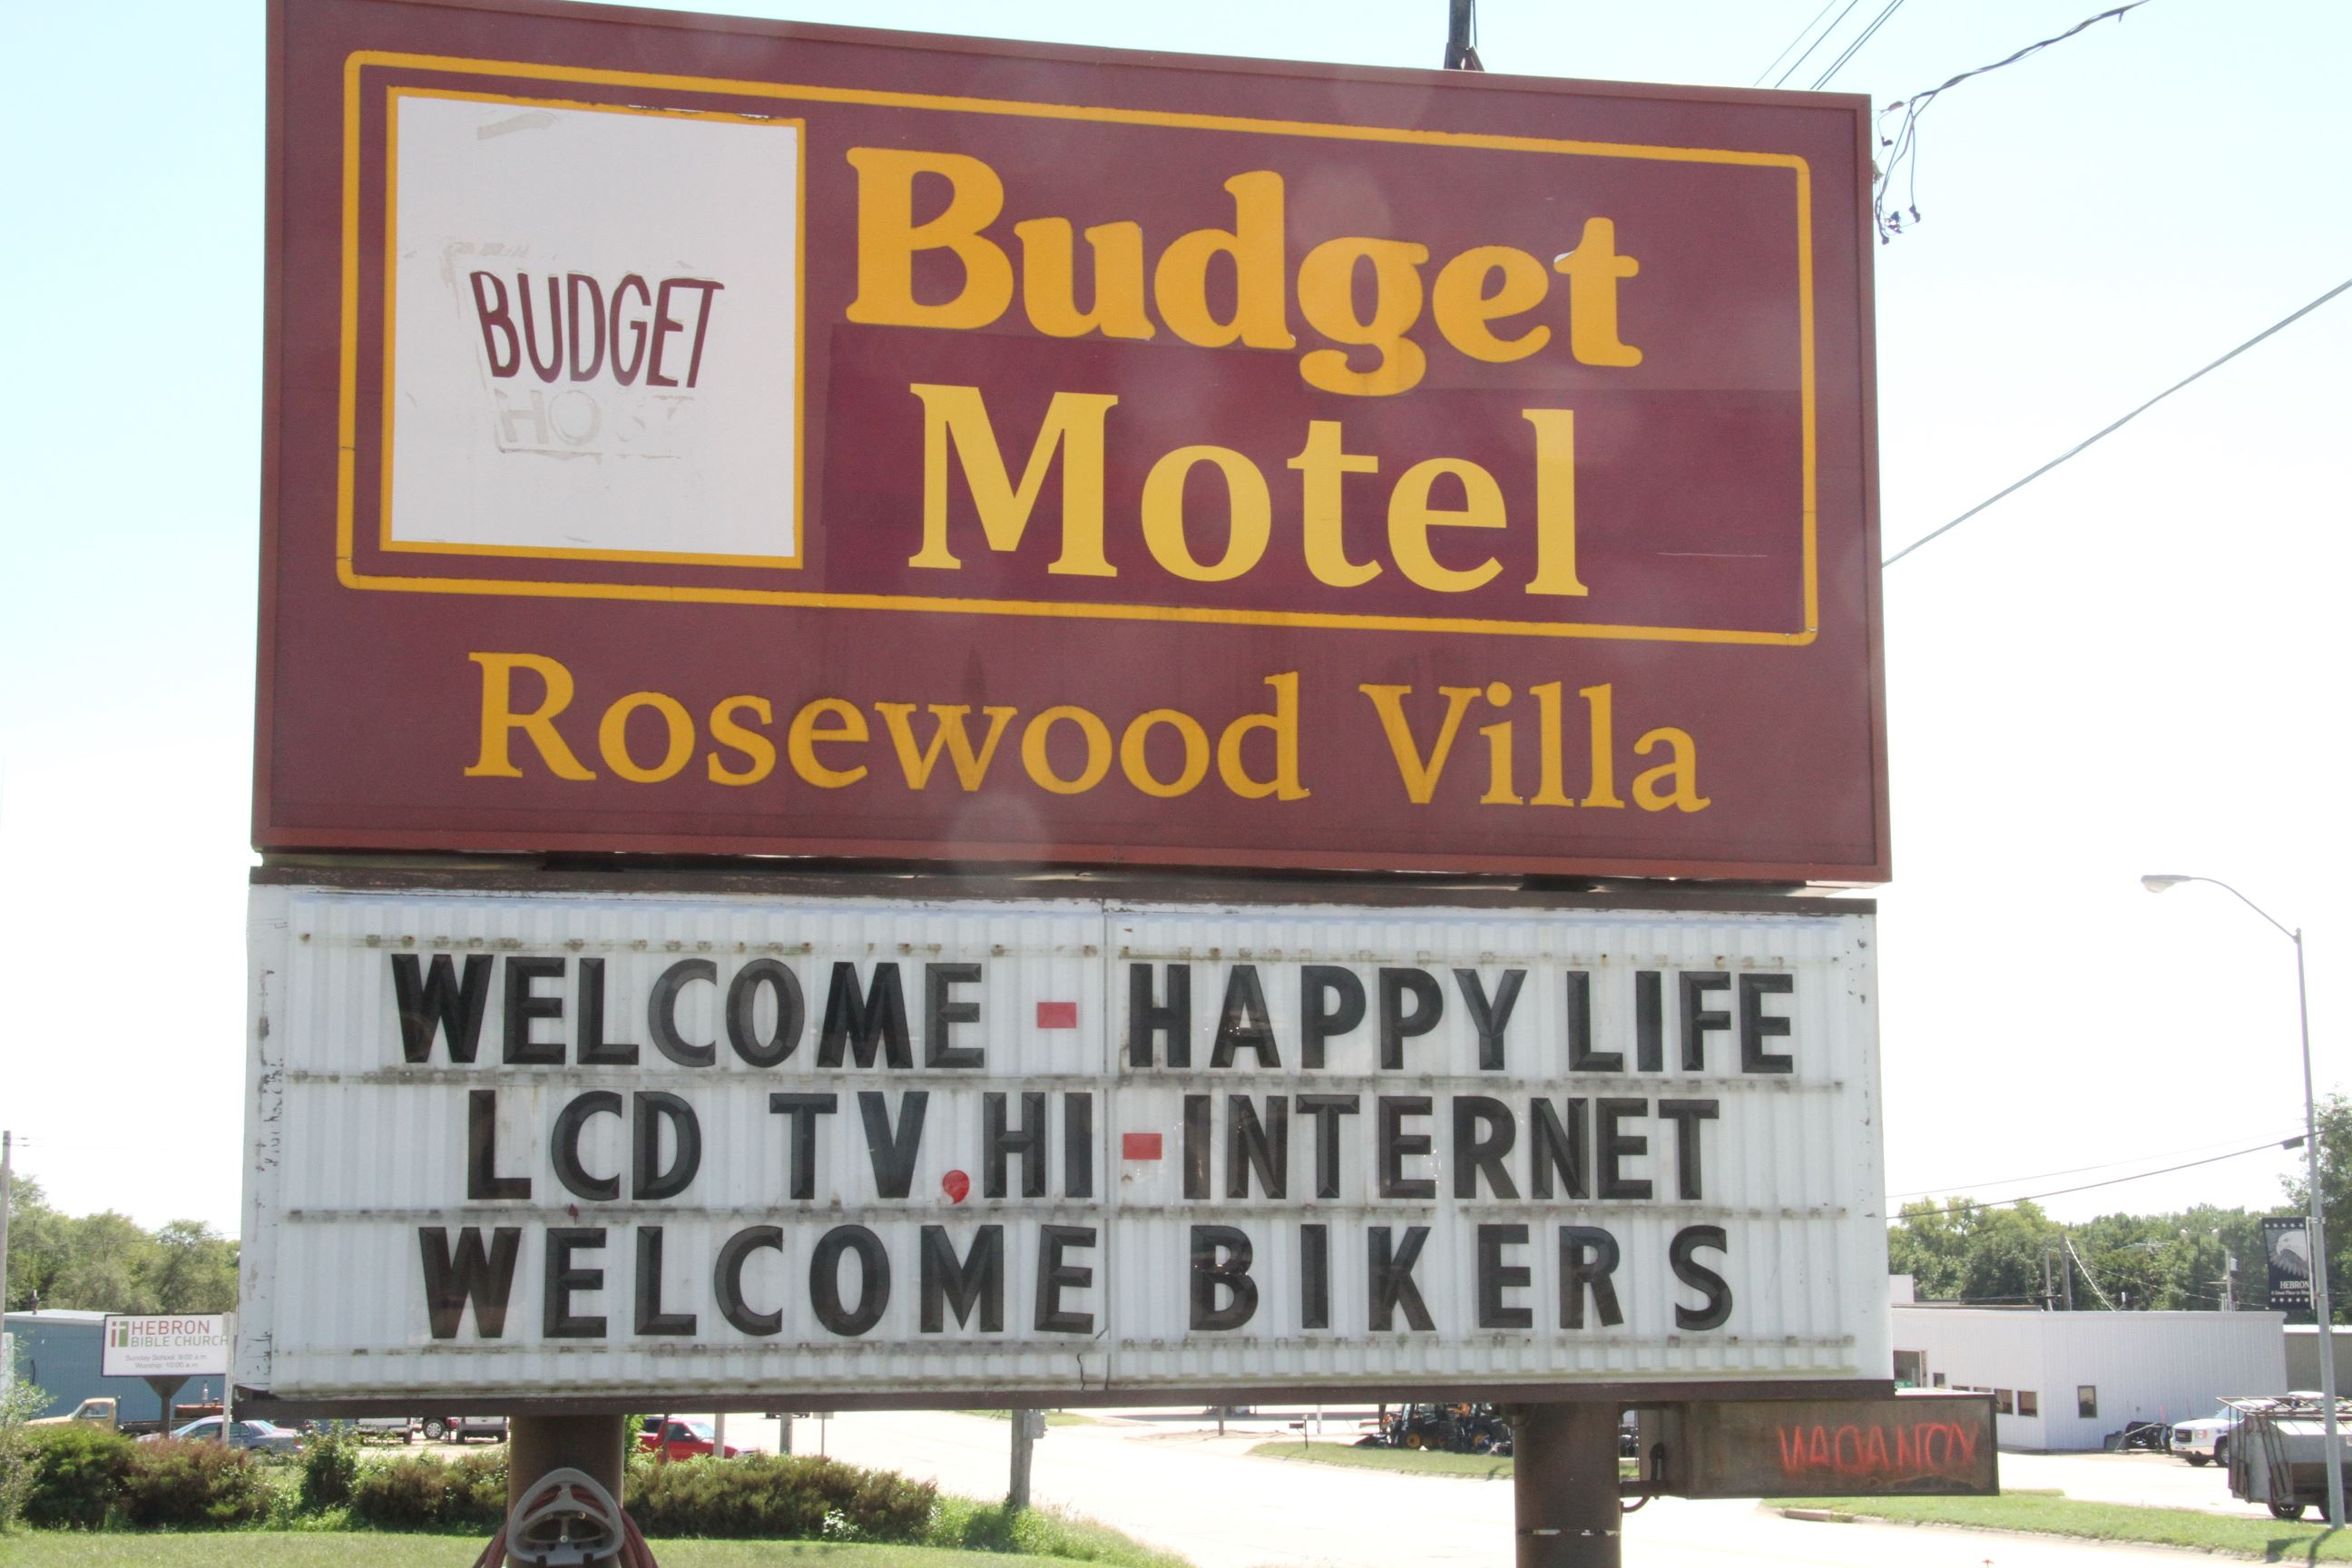 A sign for the Budget Motel.